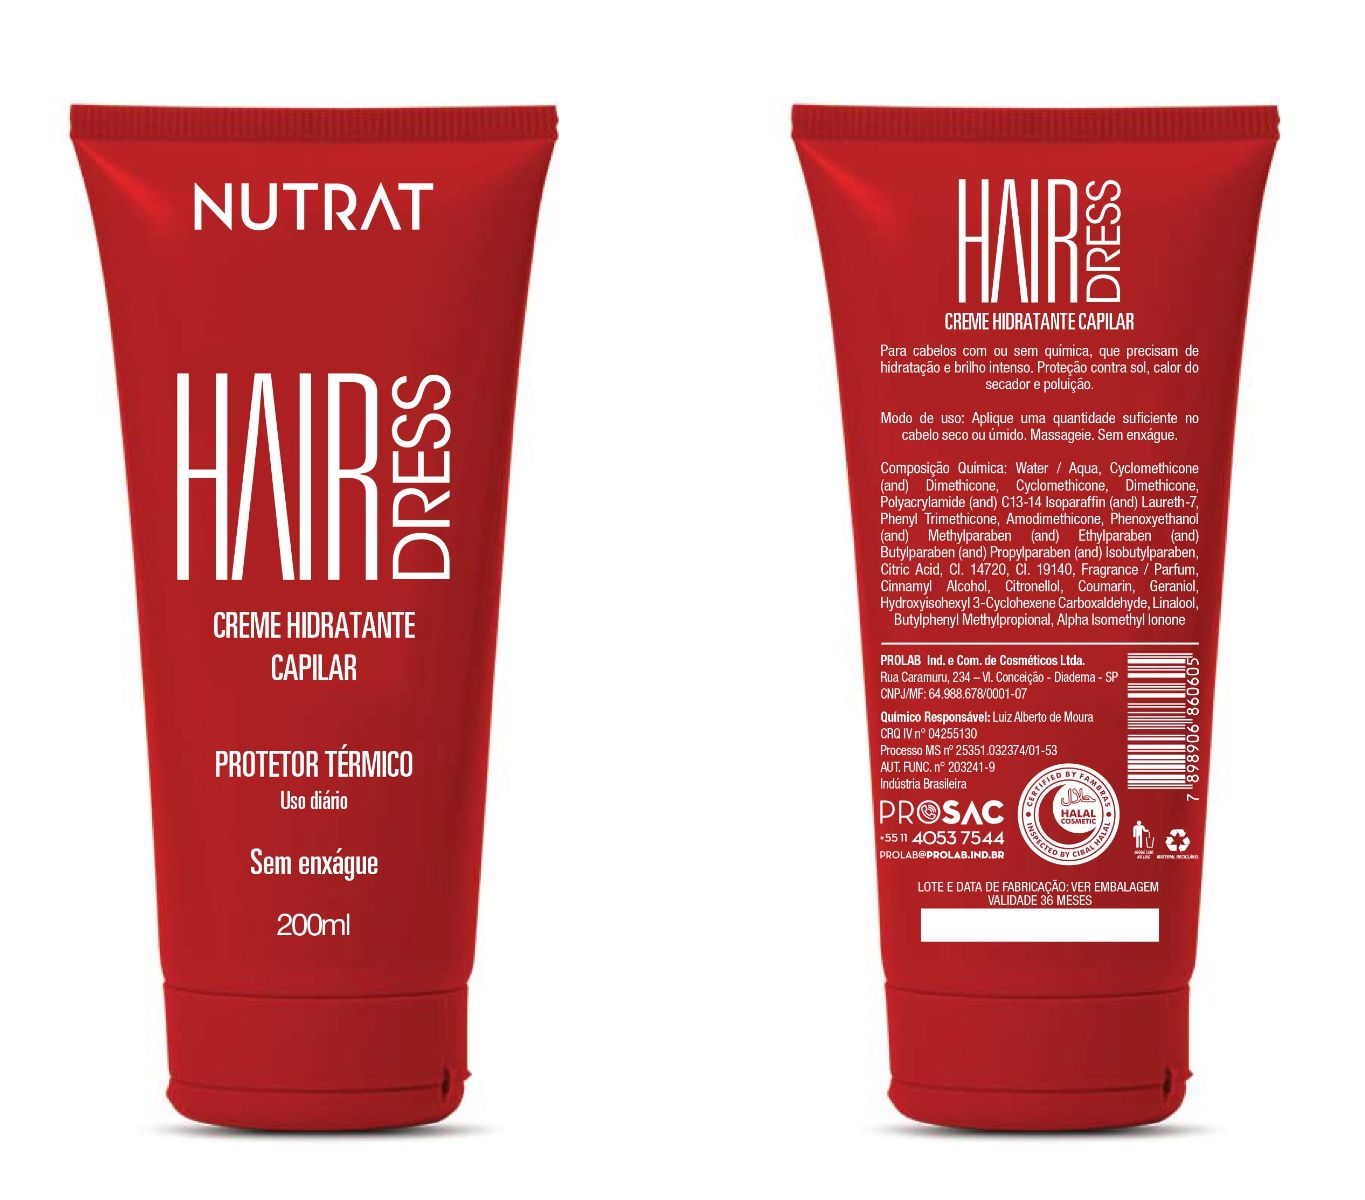 1650_Hair Dress Nutrat_200ml_HALAL